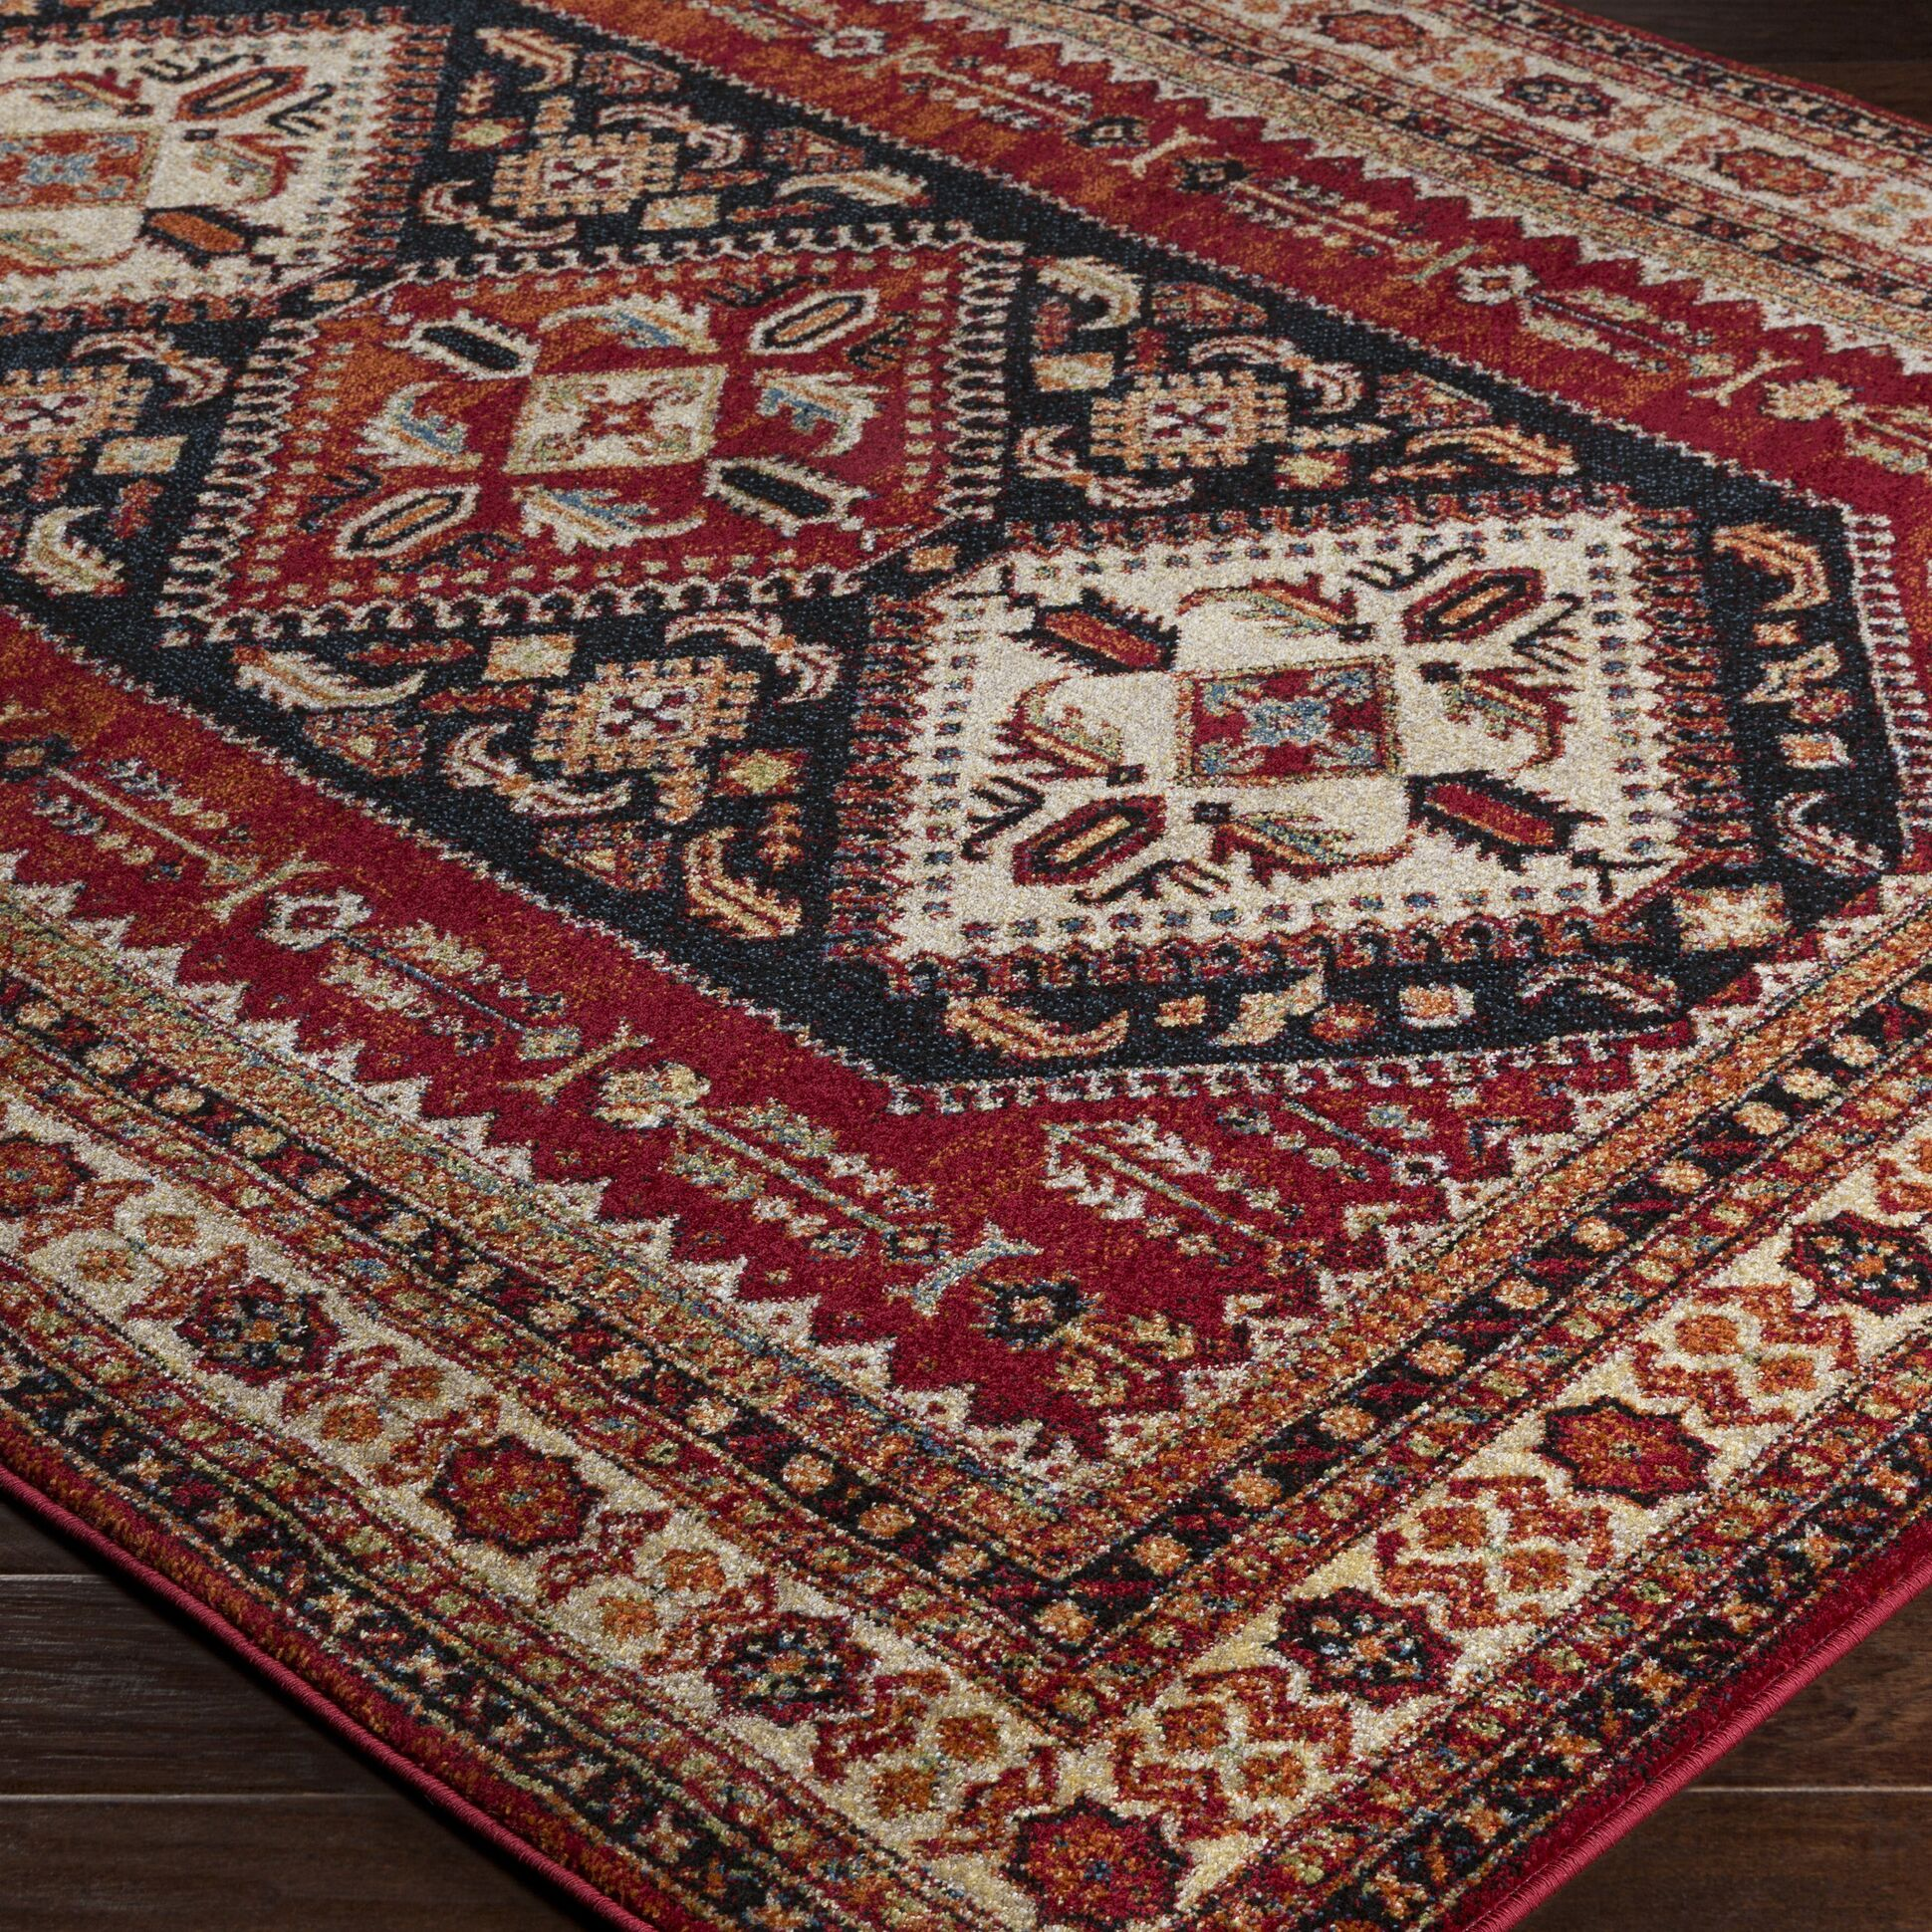 Brahim Red/Brown Area Rug Rug Size: Rectangle 7'10